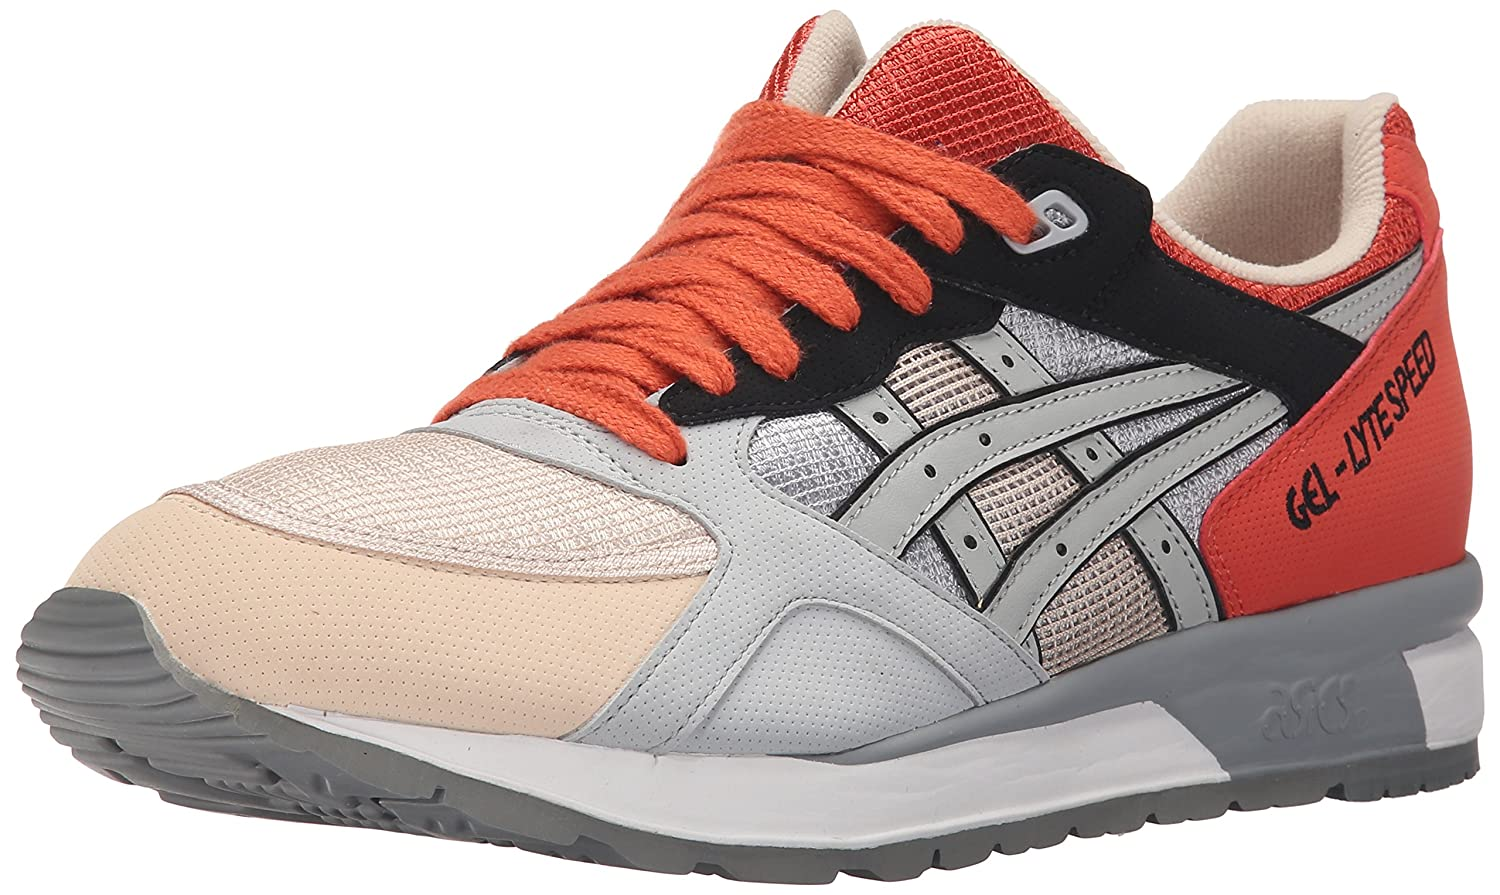 ASICS GEL Lyte Speed Retro Running Shoe B00ZQ9CQKC 10.5 M US|Light Grey/Light Grey